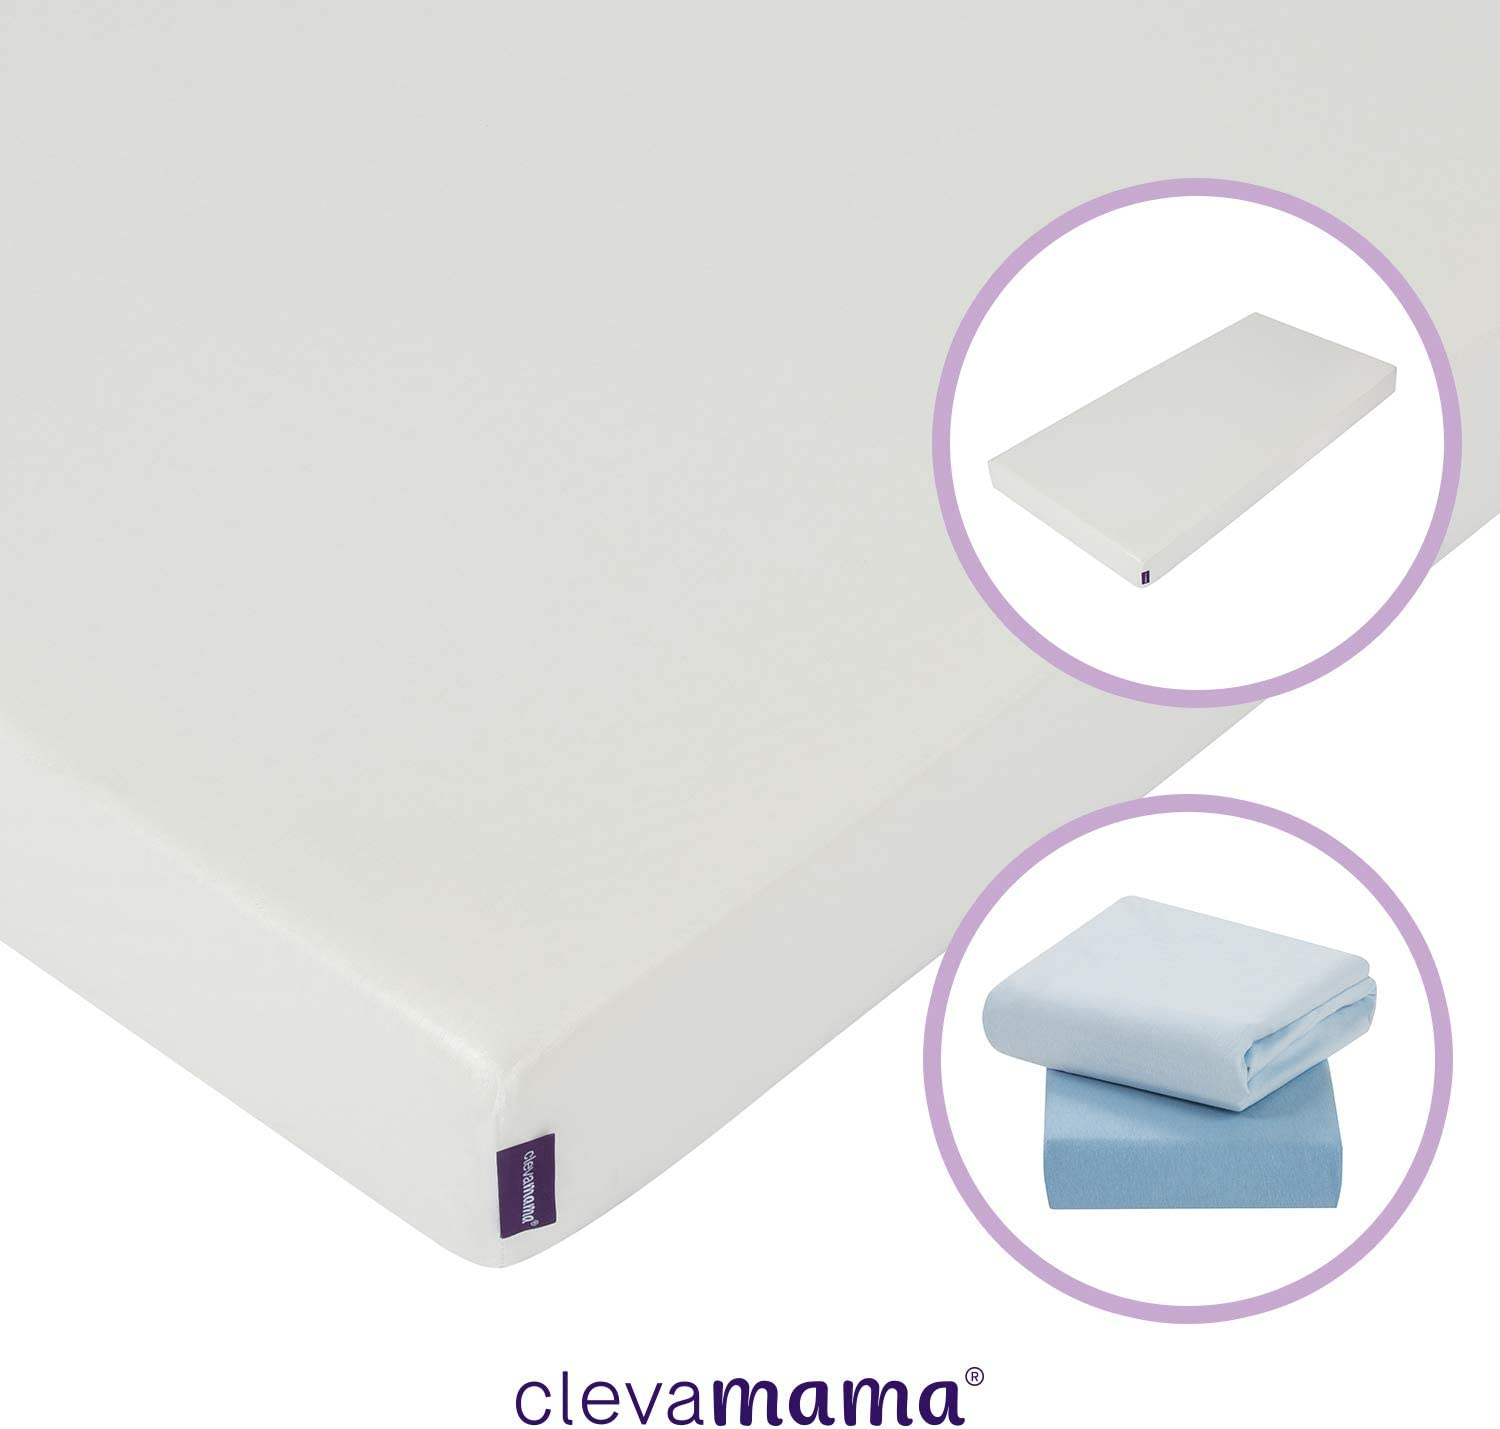 ClevaMama Cool Gel Cot Mattress with 2 Pack of Blue Cotton Sheets 60 x 120 cm Bundle